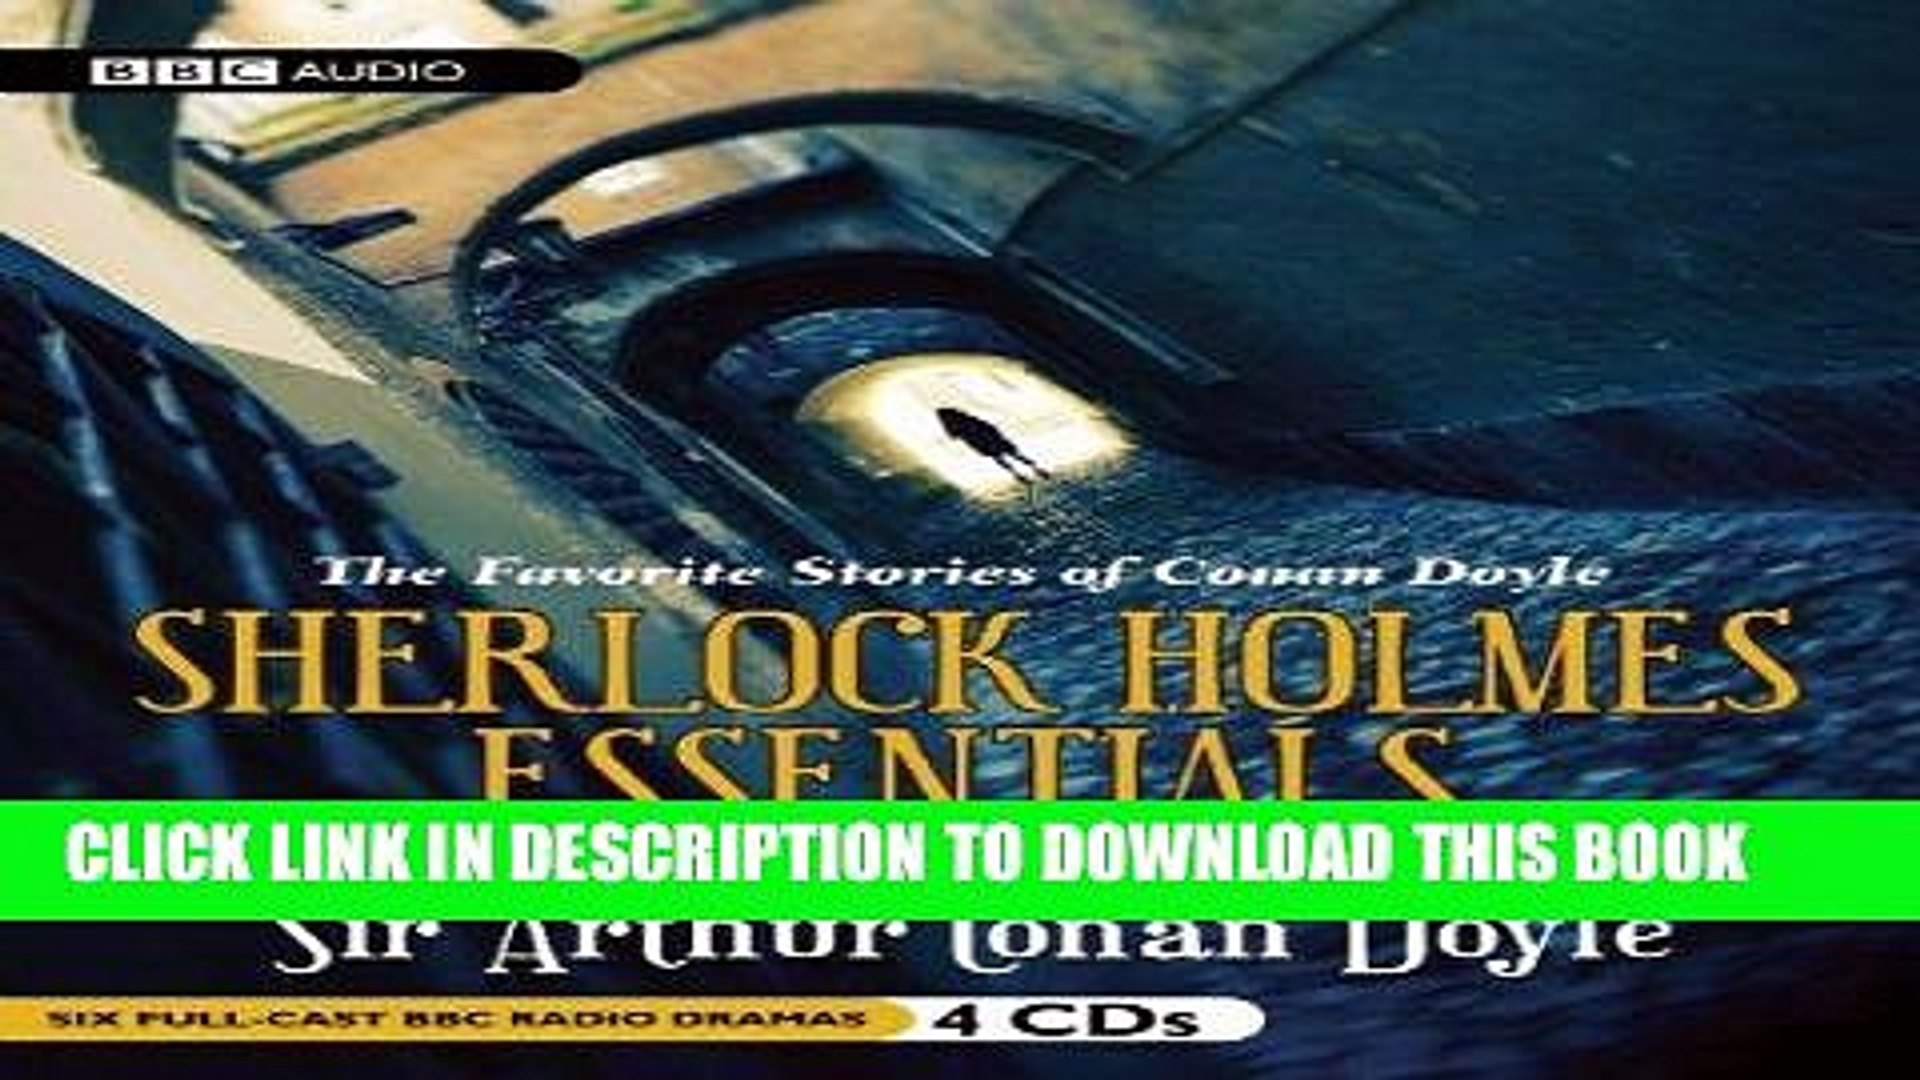 [Ebook] Sherlock Holmes Essentials, Volume 1 (Six Full Cast BBC Radio  Dramas) (BBC Radio Series)